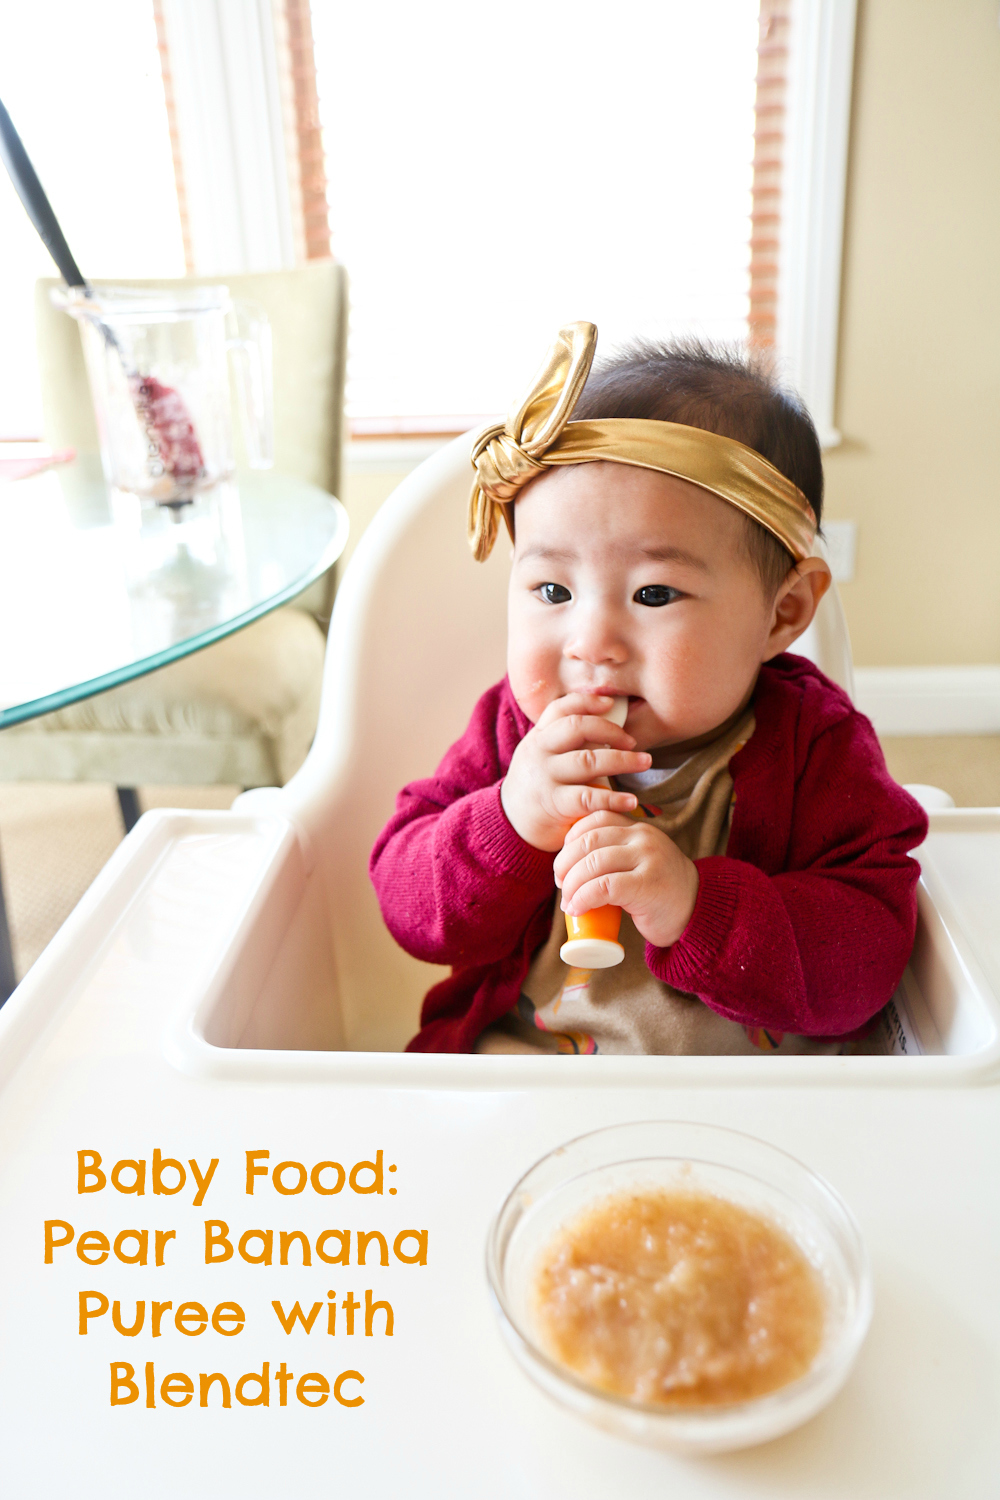 Baby Food: Pear Banana Puree with Blendtec